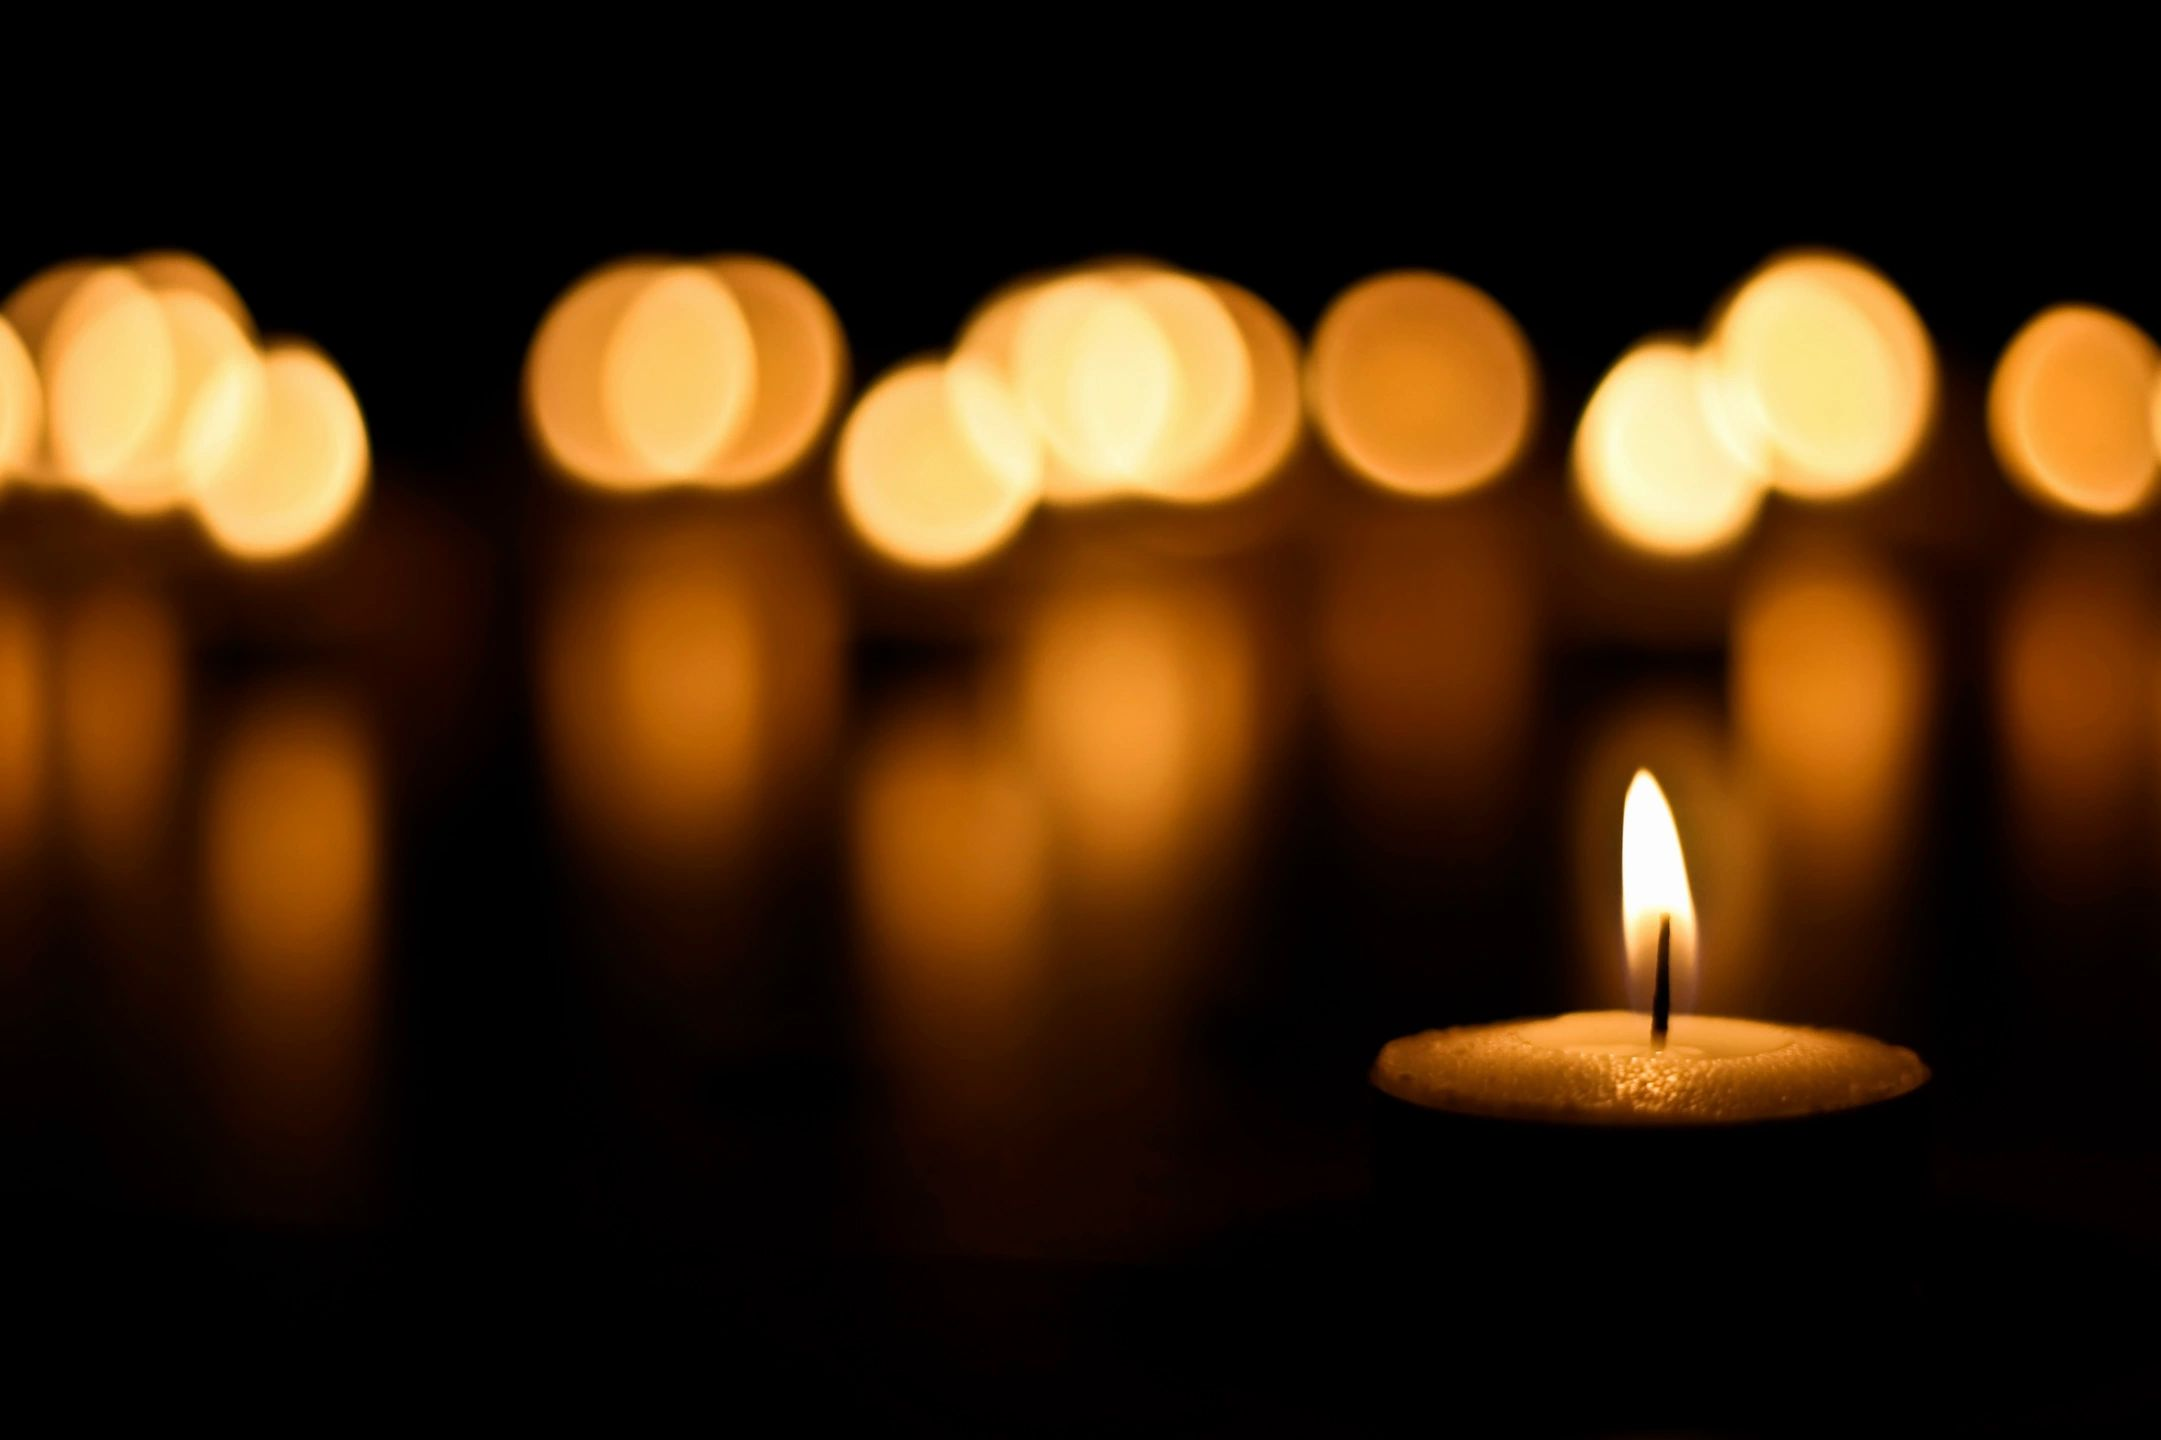 out of focus candles over a dark background